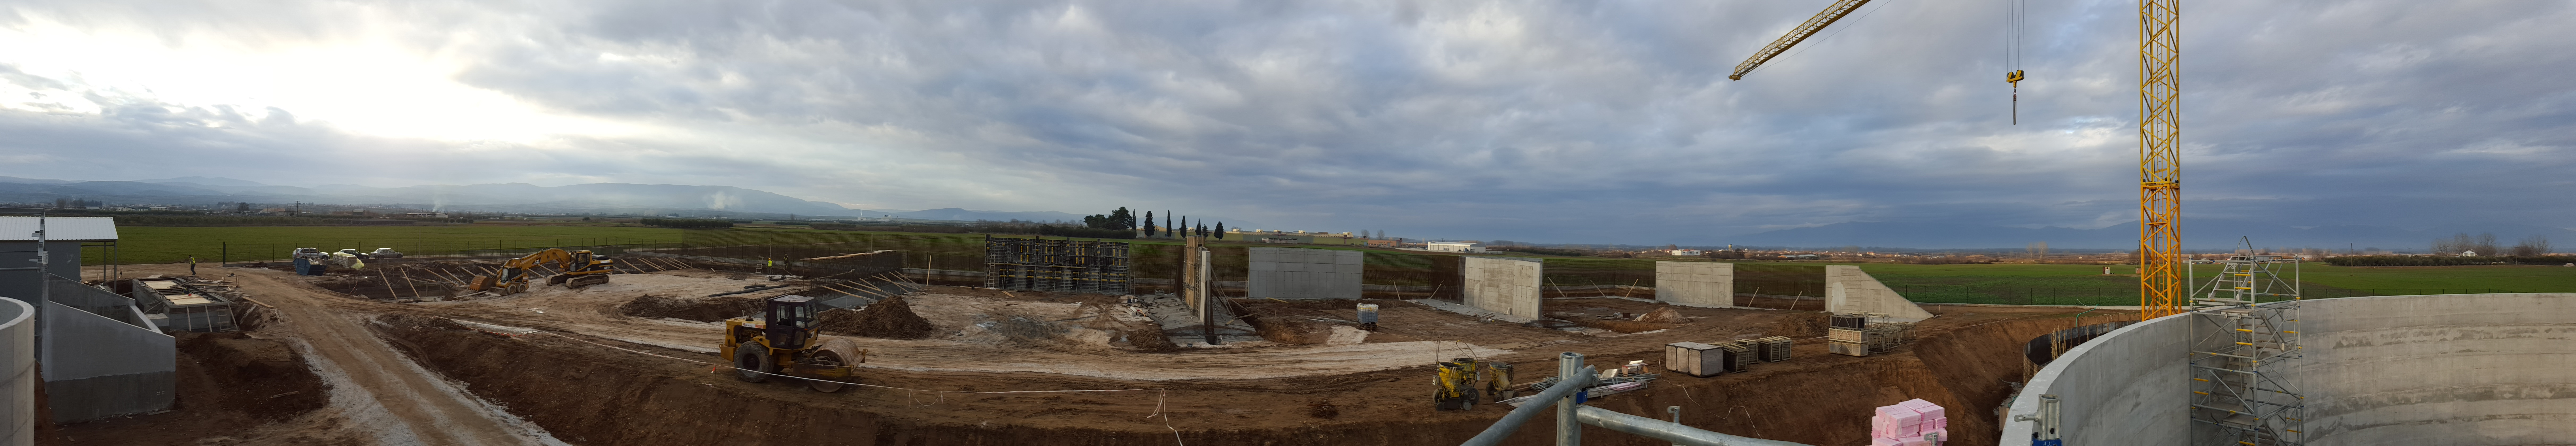 Construction Start for EnviTec Biogas in Greece